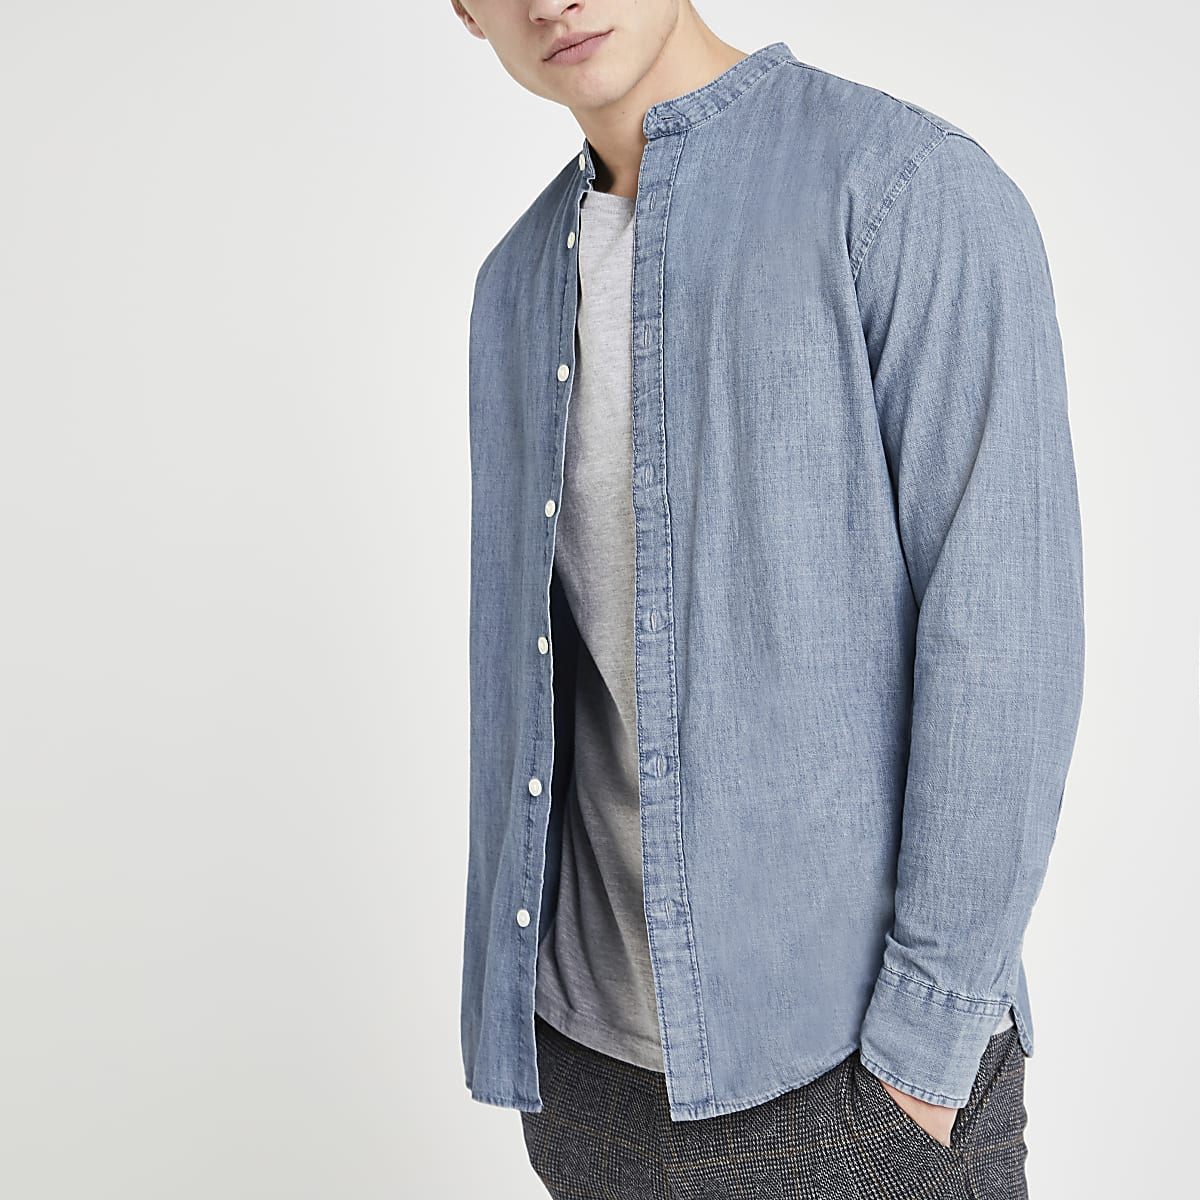 Selected Homme – Chemise manches longues bleue